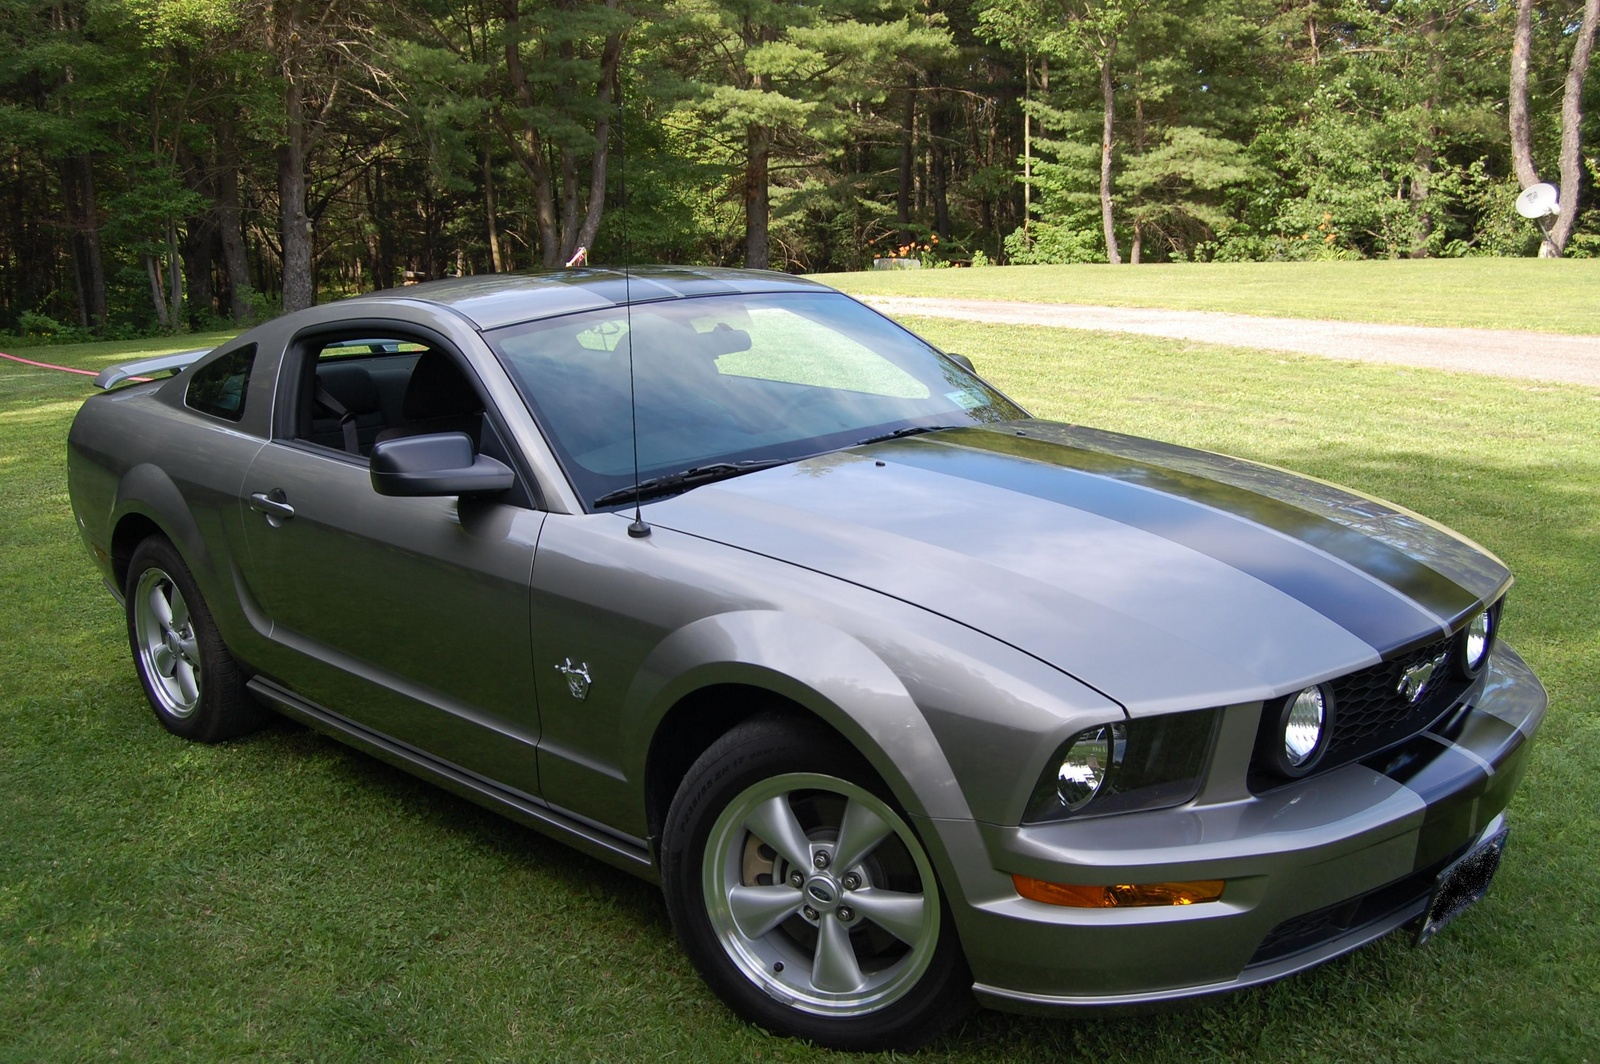 2009 Ford Mustang Gt Horsepower Car Autos Gallery